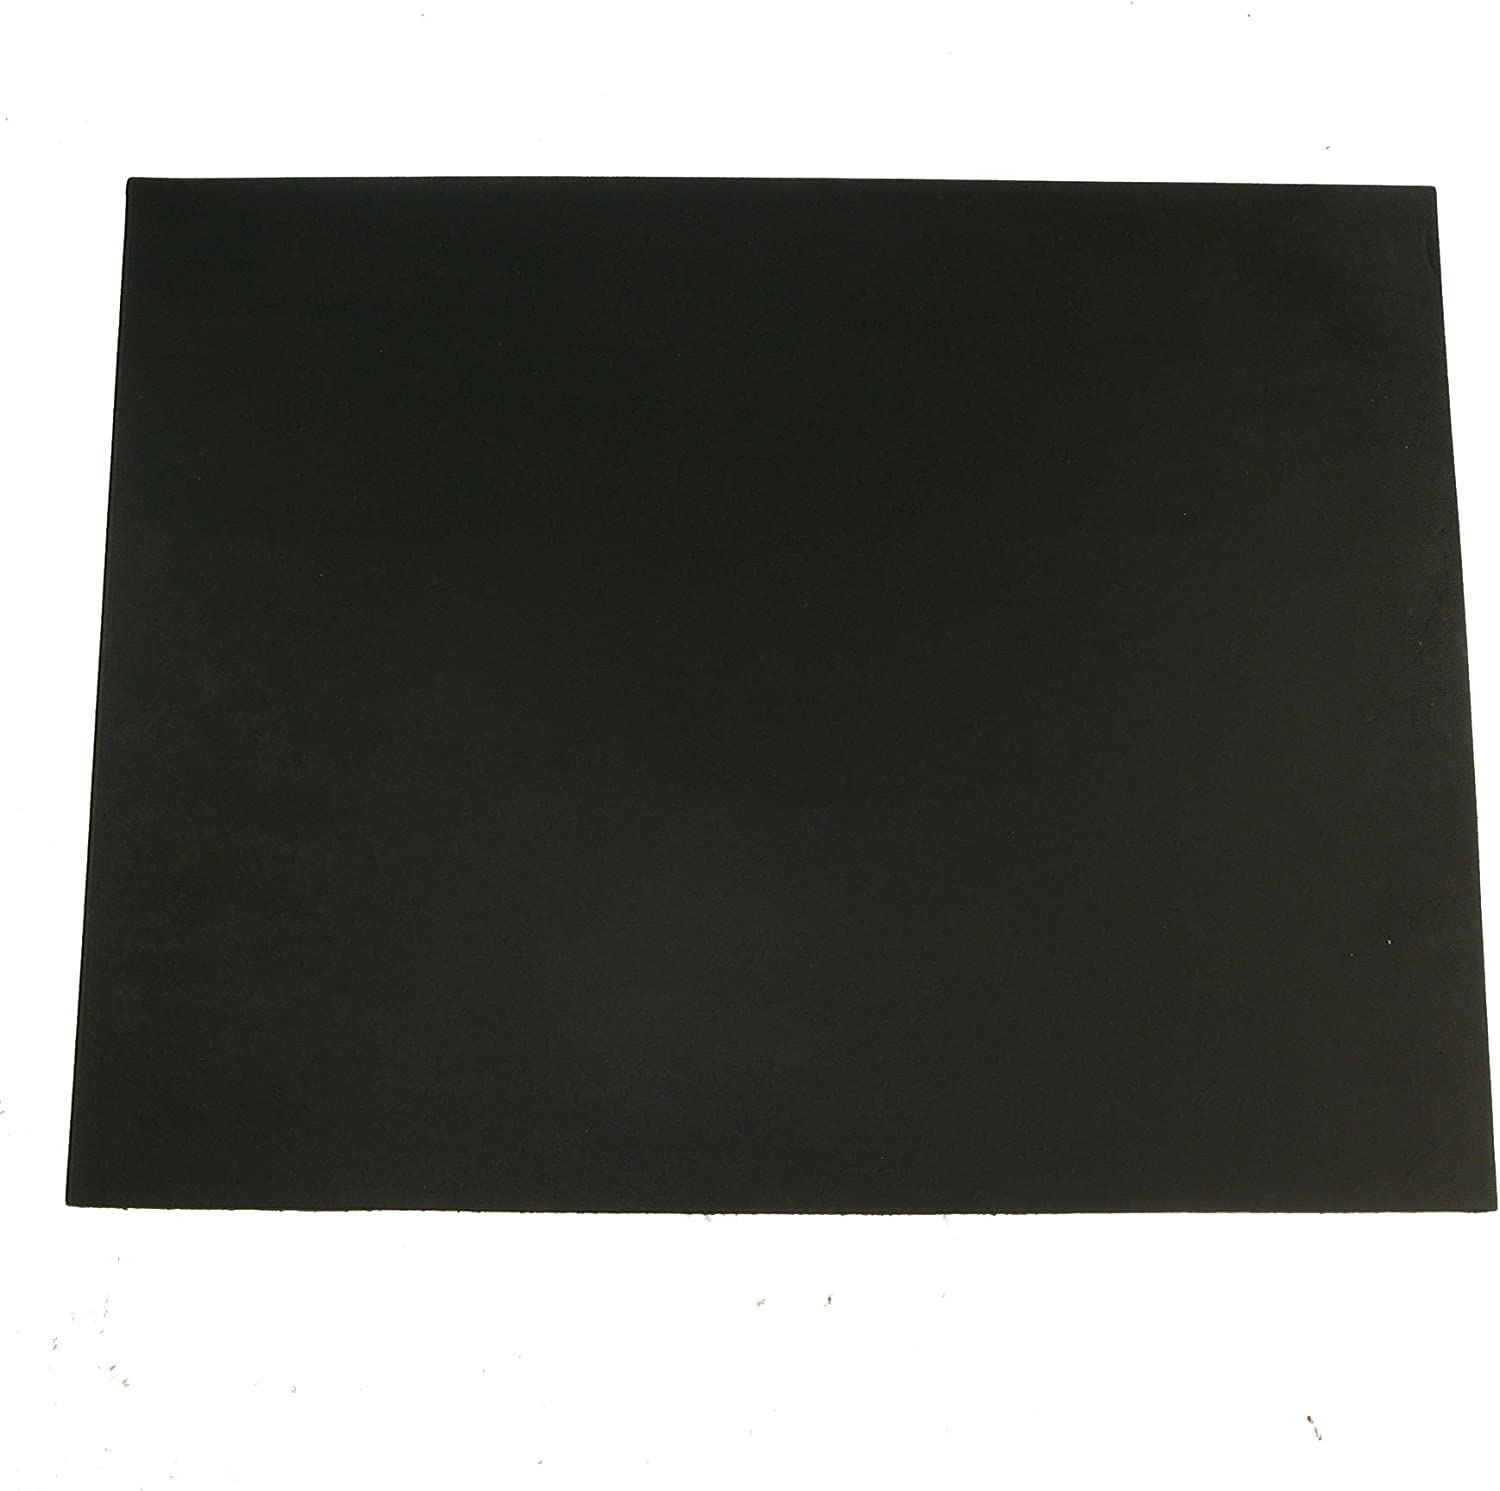 Black Vegetable Tan Cowhide Tooling Leather 4-5oz Pre-Cut Project Piece 8.5x11